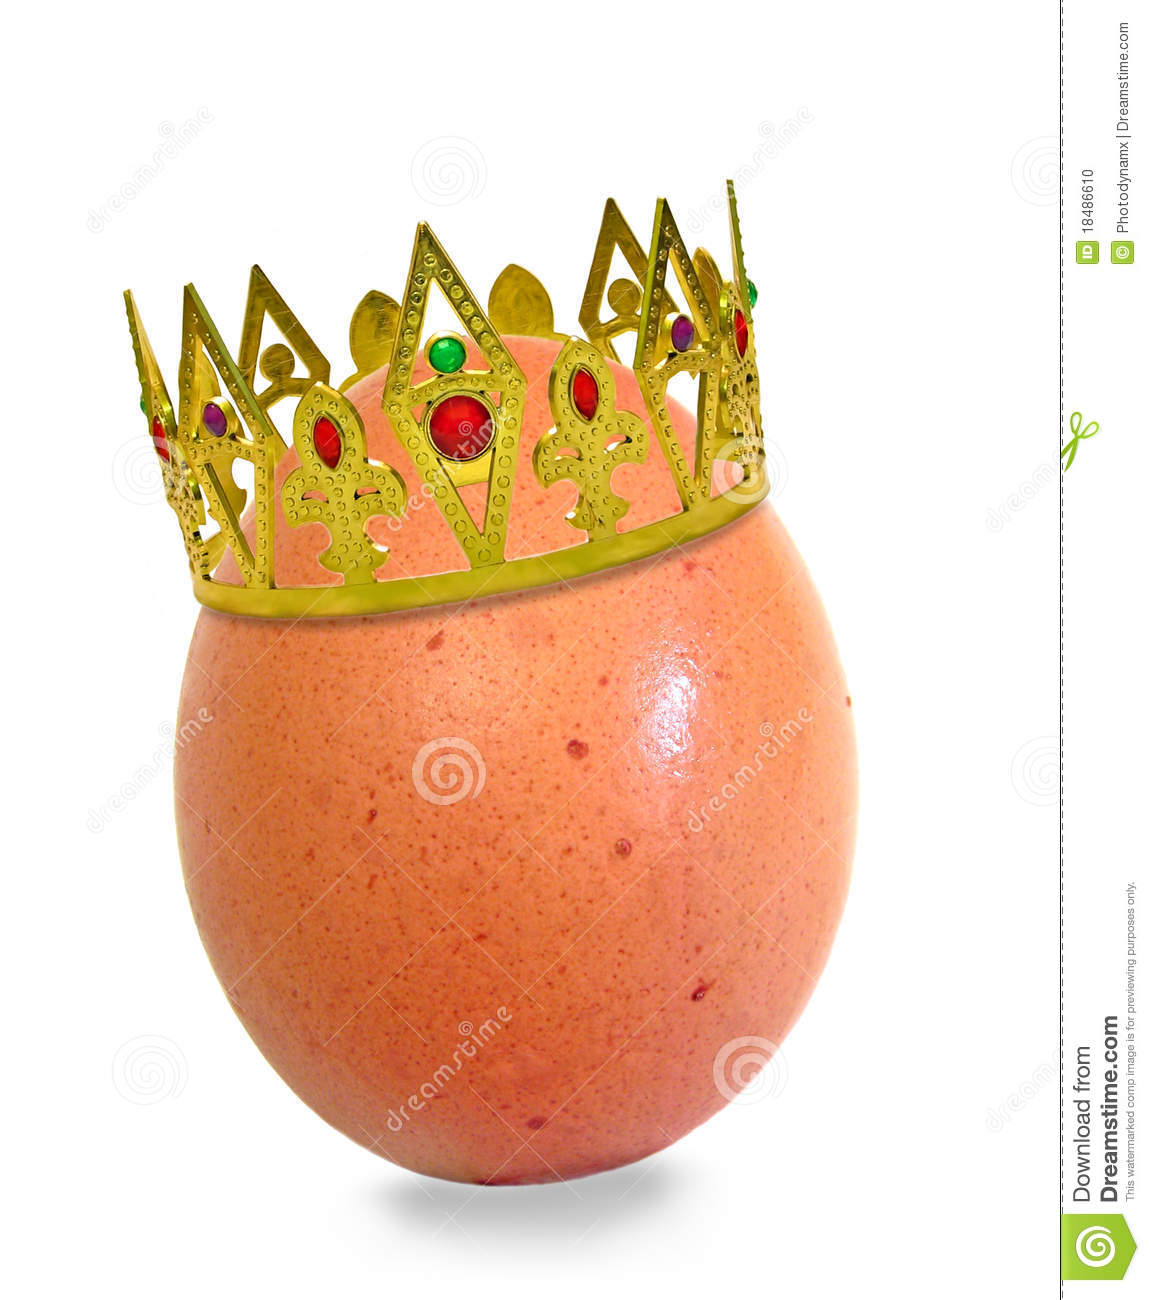 king of eggs stock photo  image of broken  fried  class